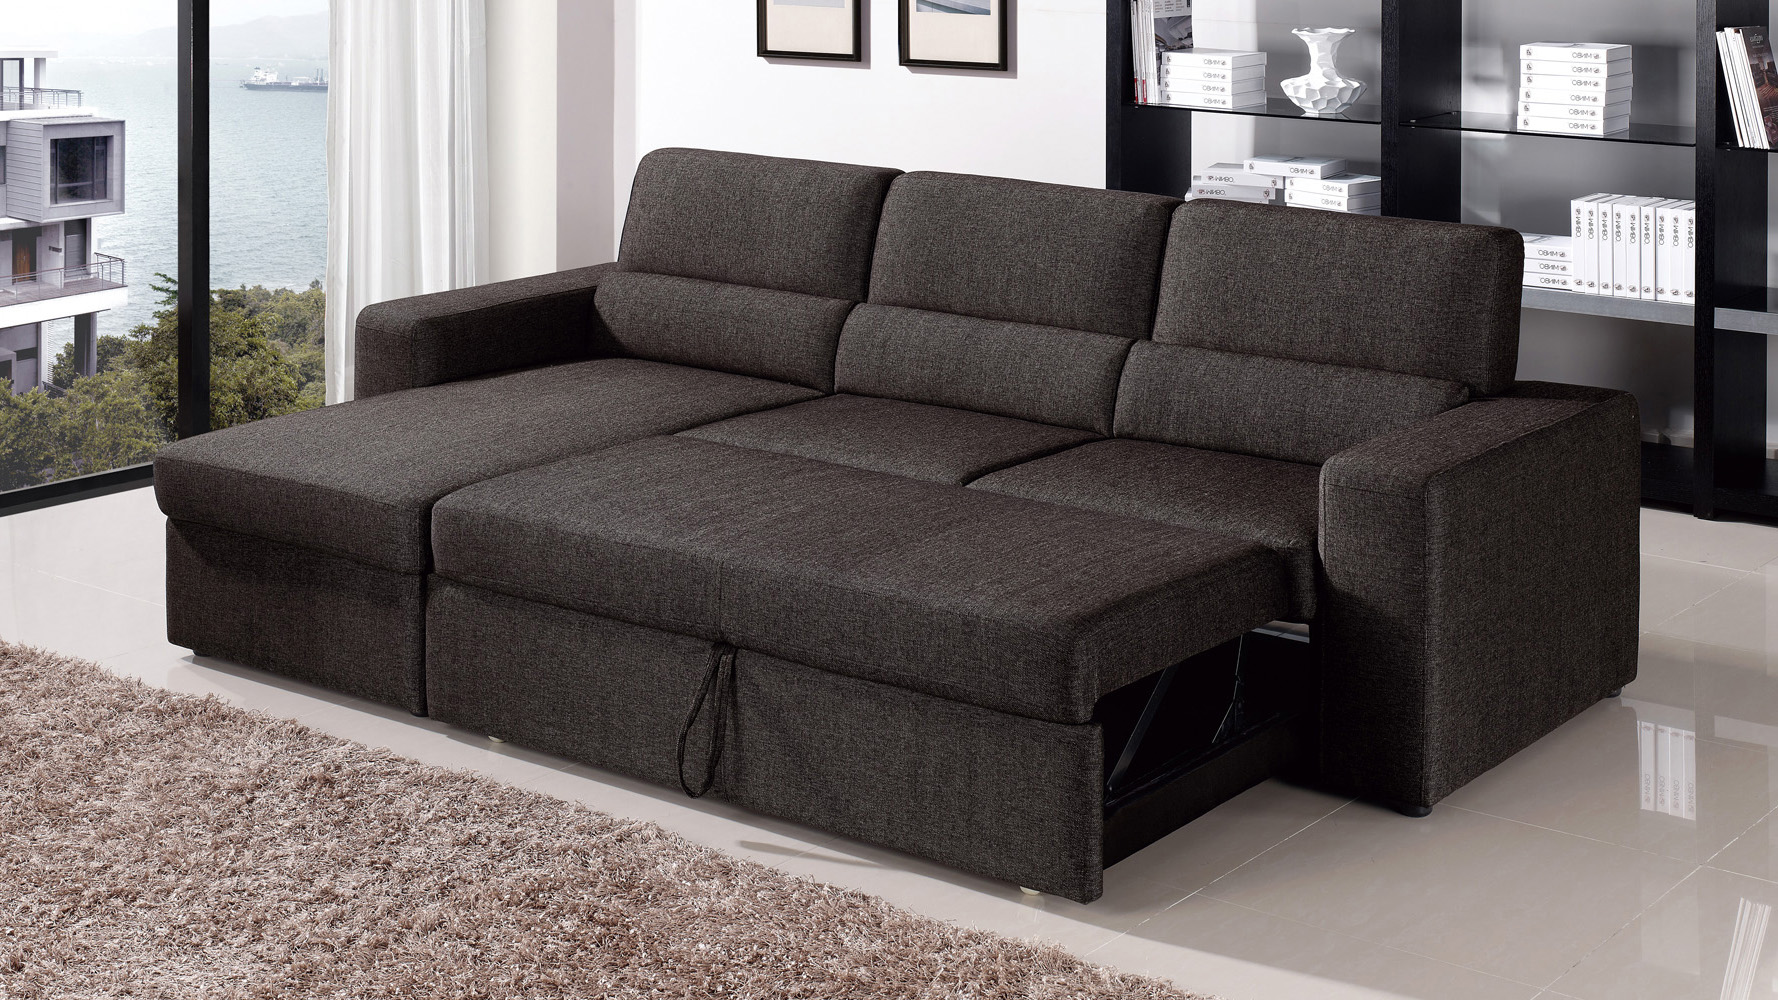 BlackBrown Clubber Sleeper Sectional Sofa  Zuri Furniture